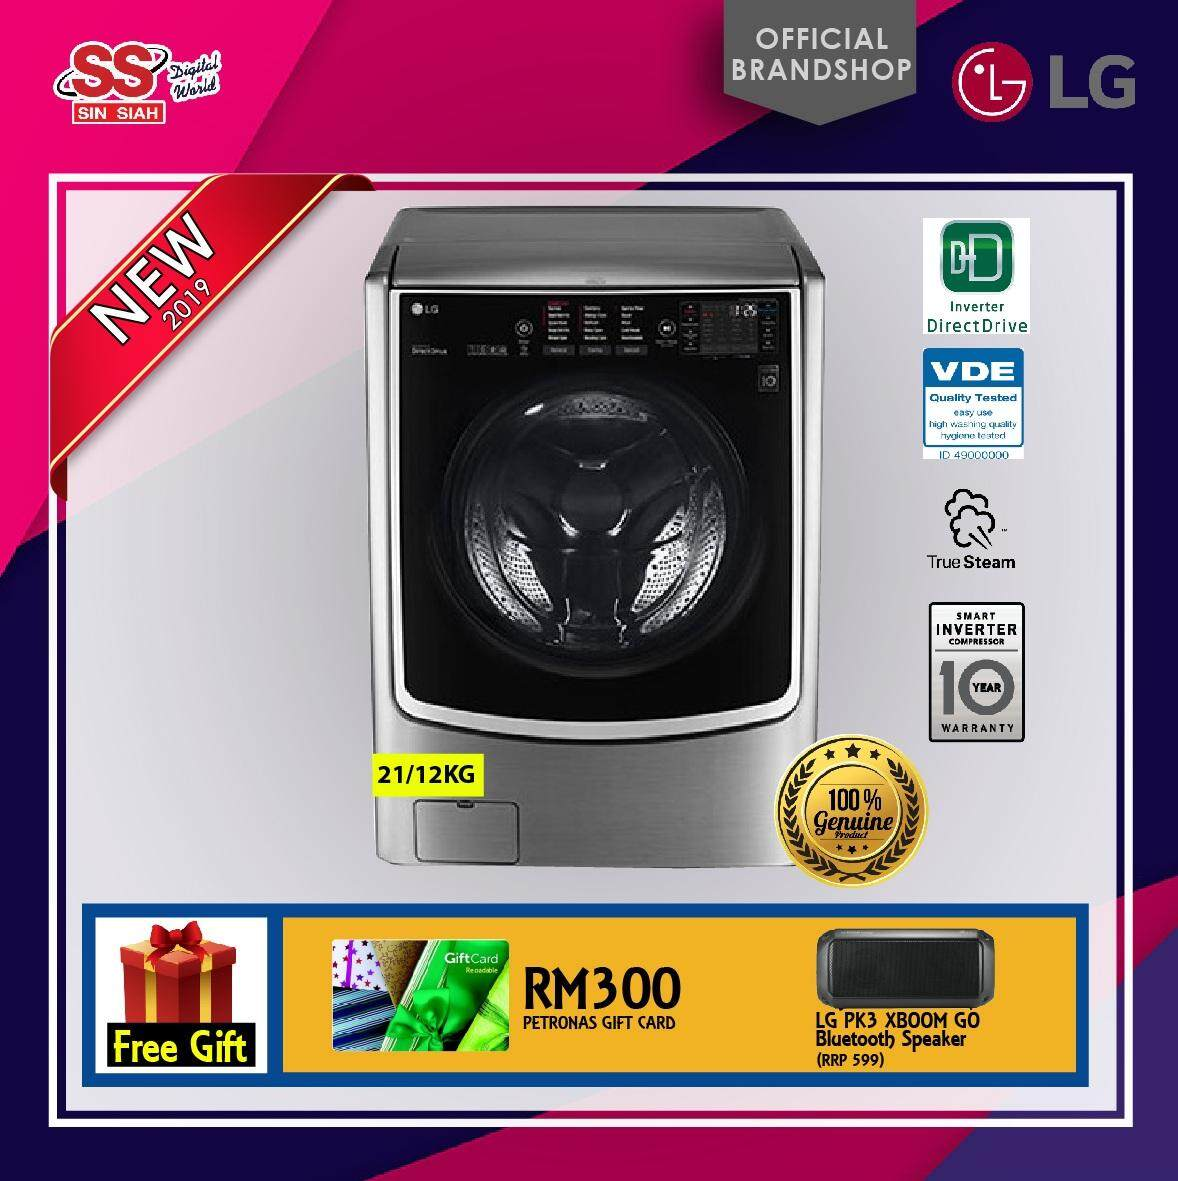 LG 21.0KG 12.0KG DRYER COMBO TWIN WASH 6 MOTION DD INVERTER NFC TAG ON FRONT LOAD WASHING MACHINE